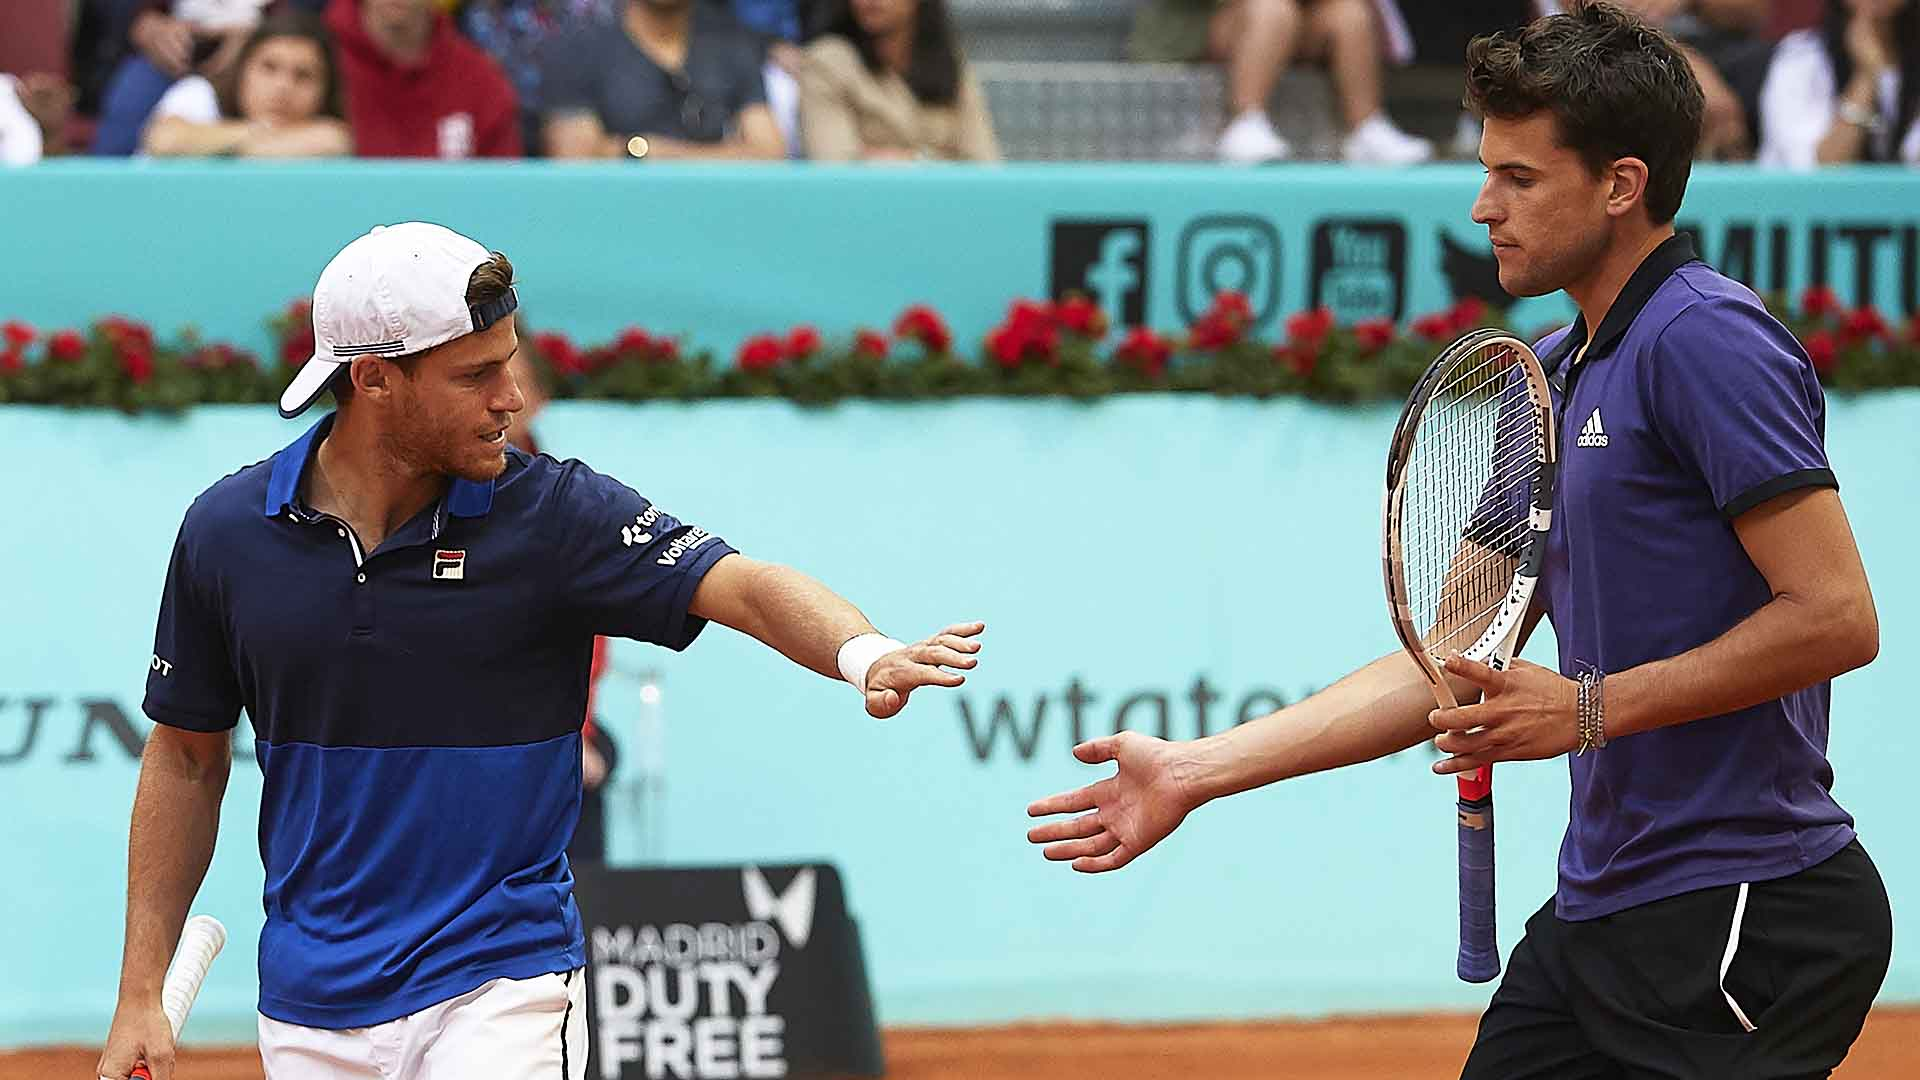 Diego Schwartzman and Dominic Thiem advance to their second tour-level final of the season at the Mutua Madrid Open.